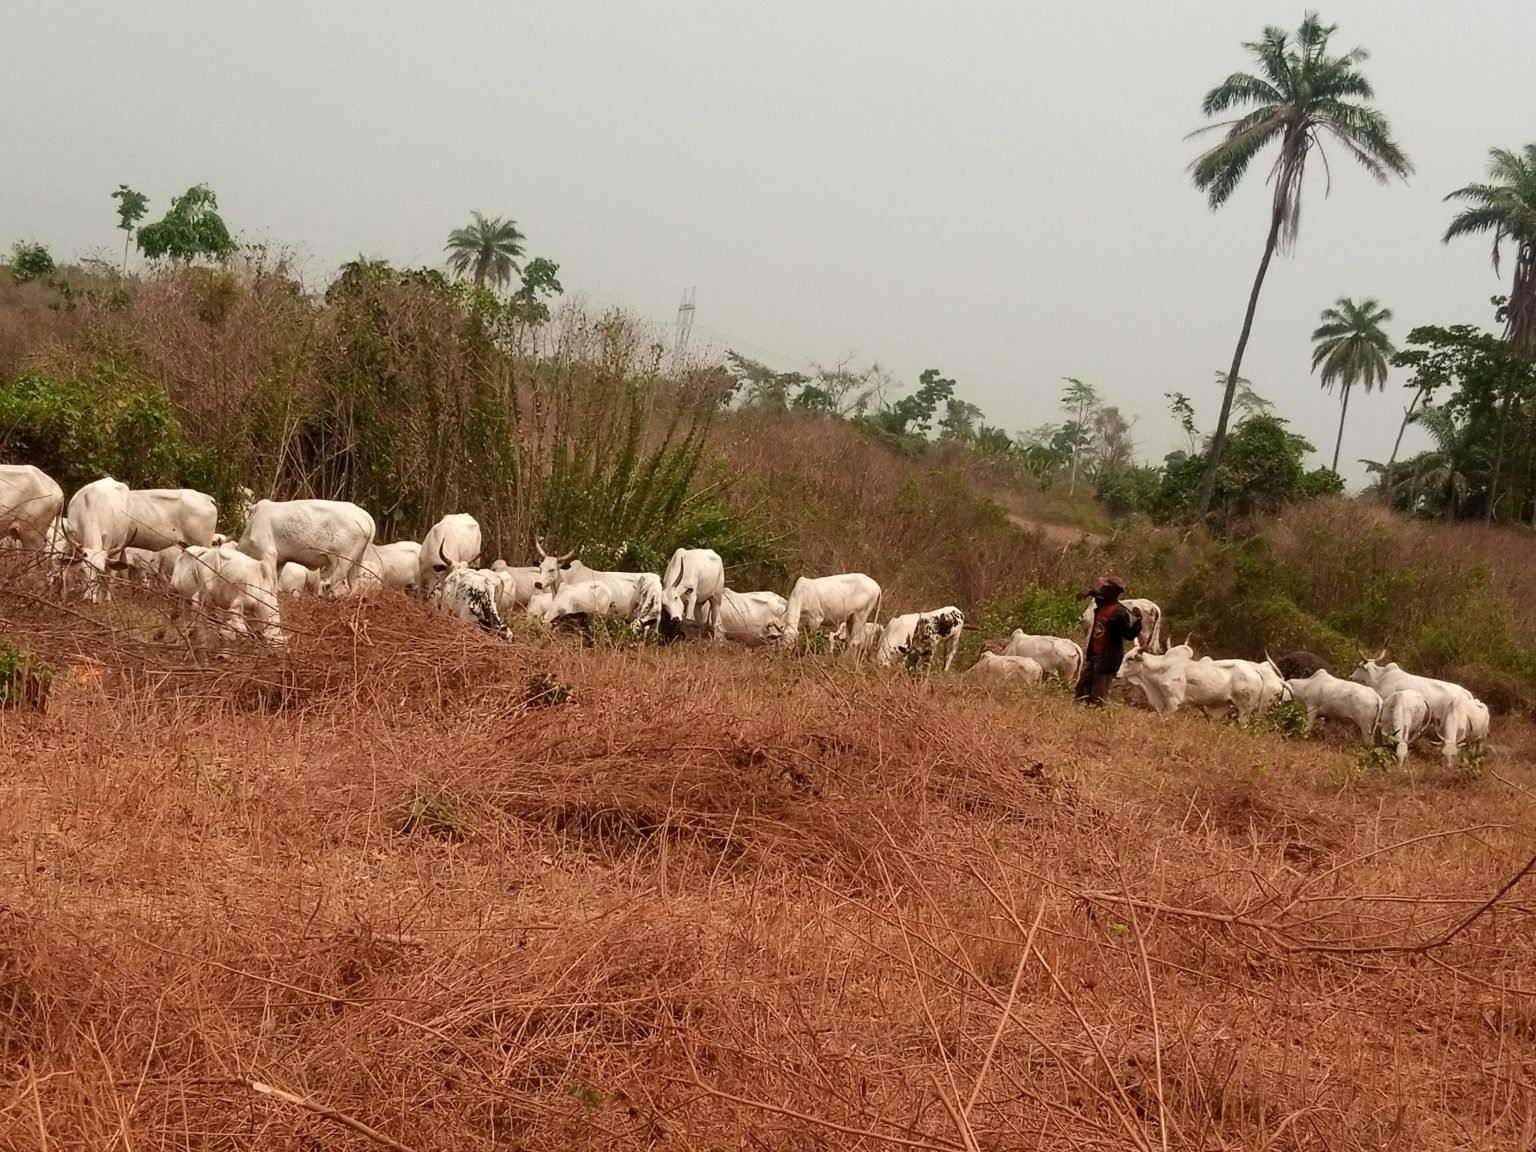 Amotekun flushes over 30 herders, 5,000 cows out of Ondo forest reserves, Amotekun flushes over 30 herders, 5,000 cows out of Ondo forest reserves, Effiezy - Top Nigerian News & Entertainment Website